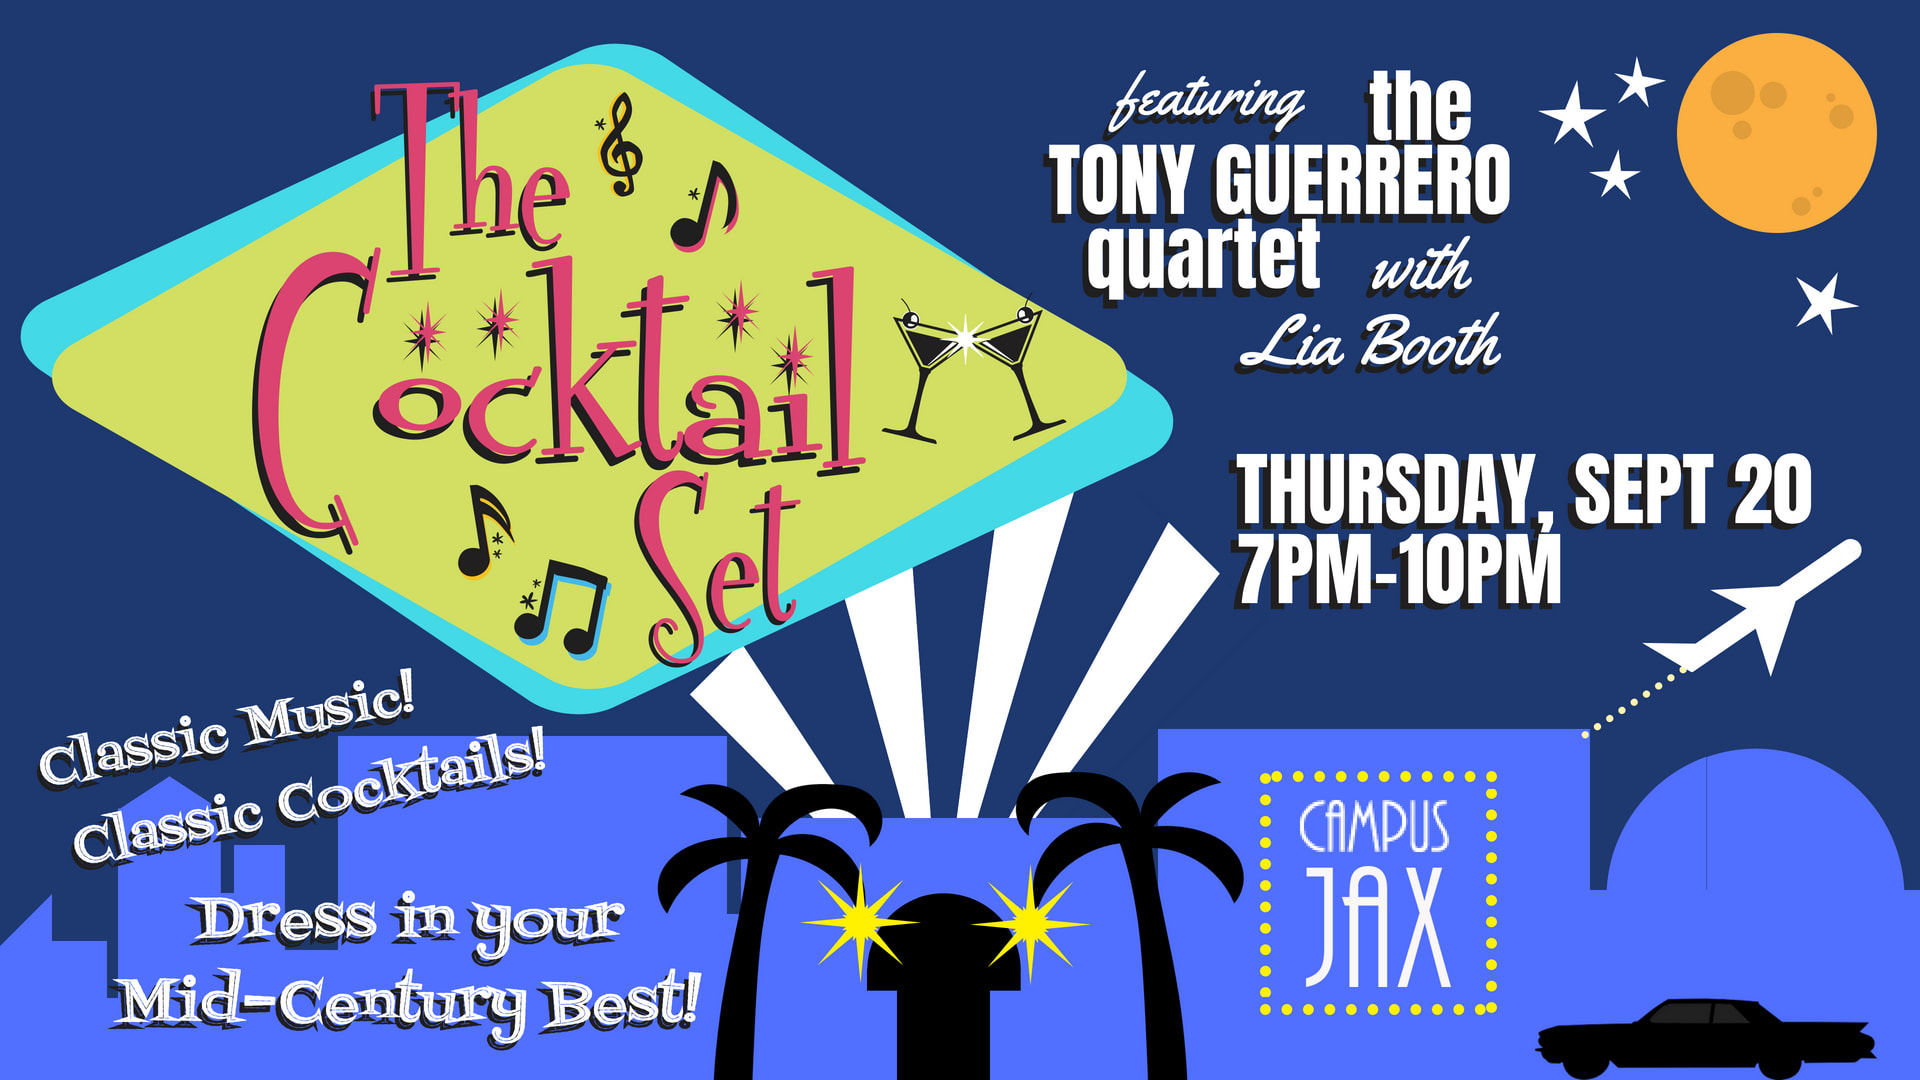 September 20 | THE COCKTAIL SET with THE TONY GUERRERO QUARTET